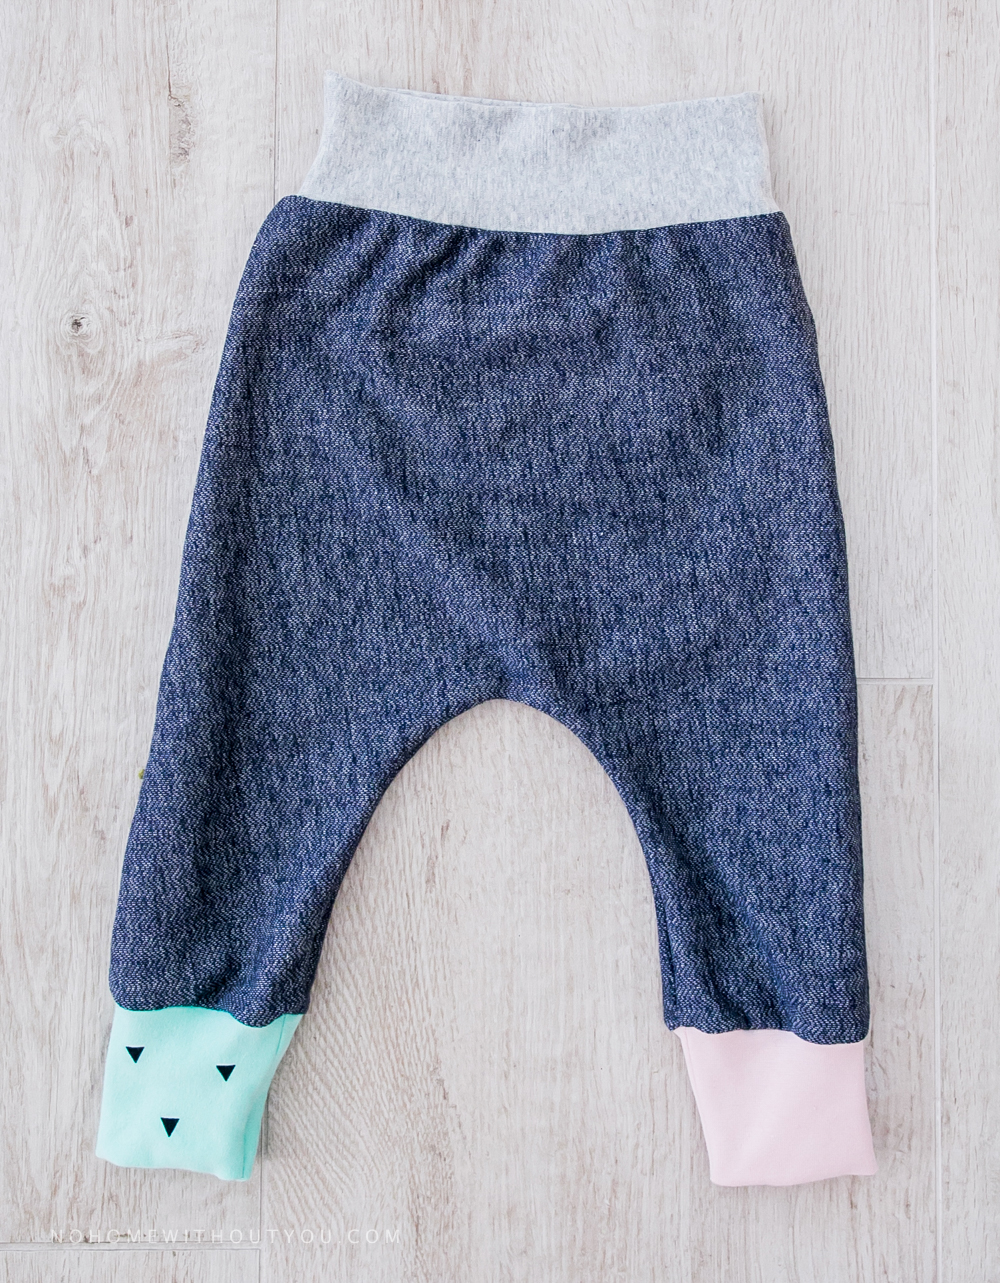 Sewing kids clothes No Home Without You blog (1 of 1)-7